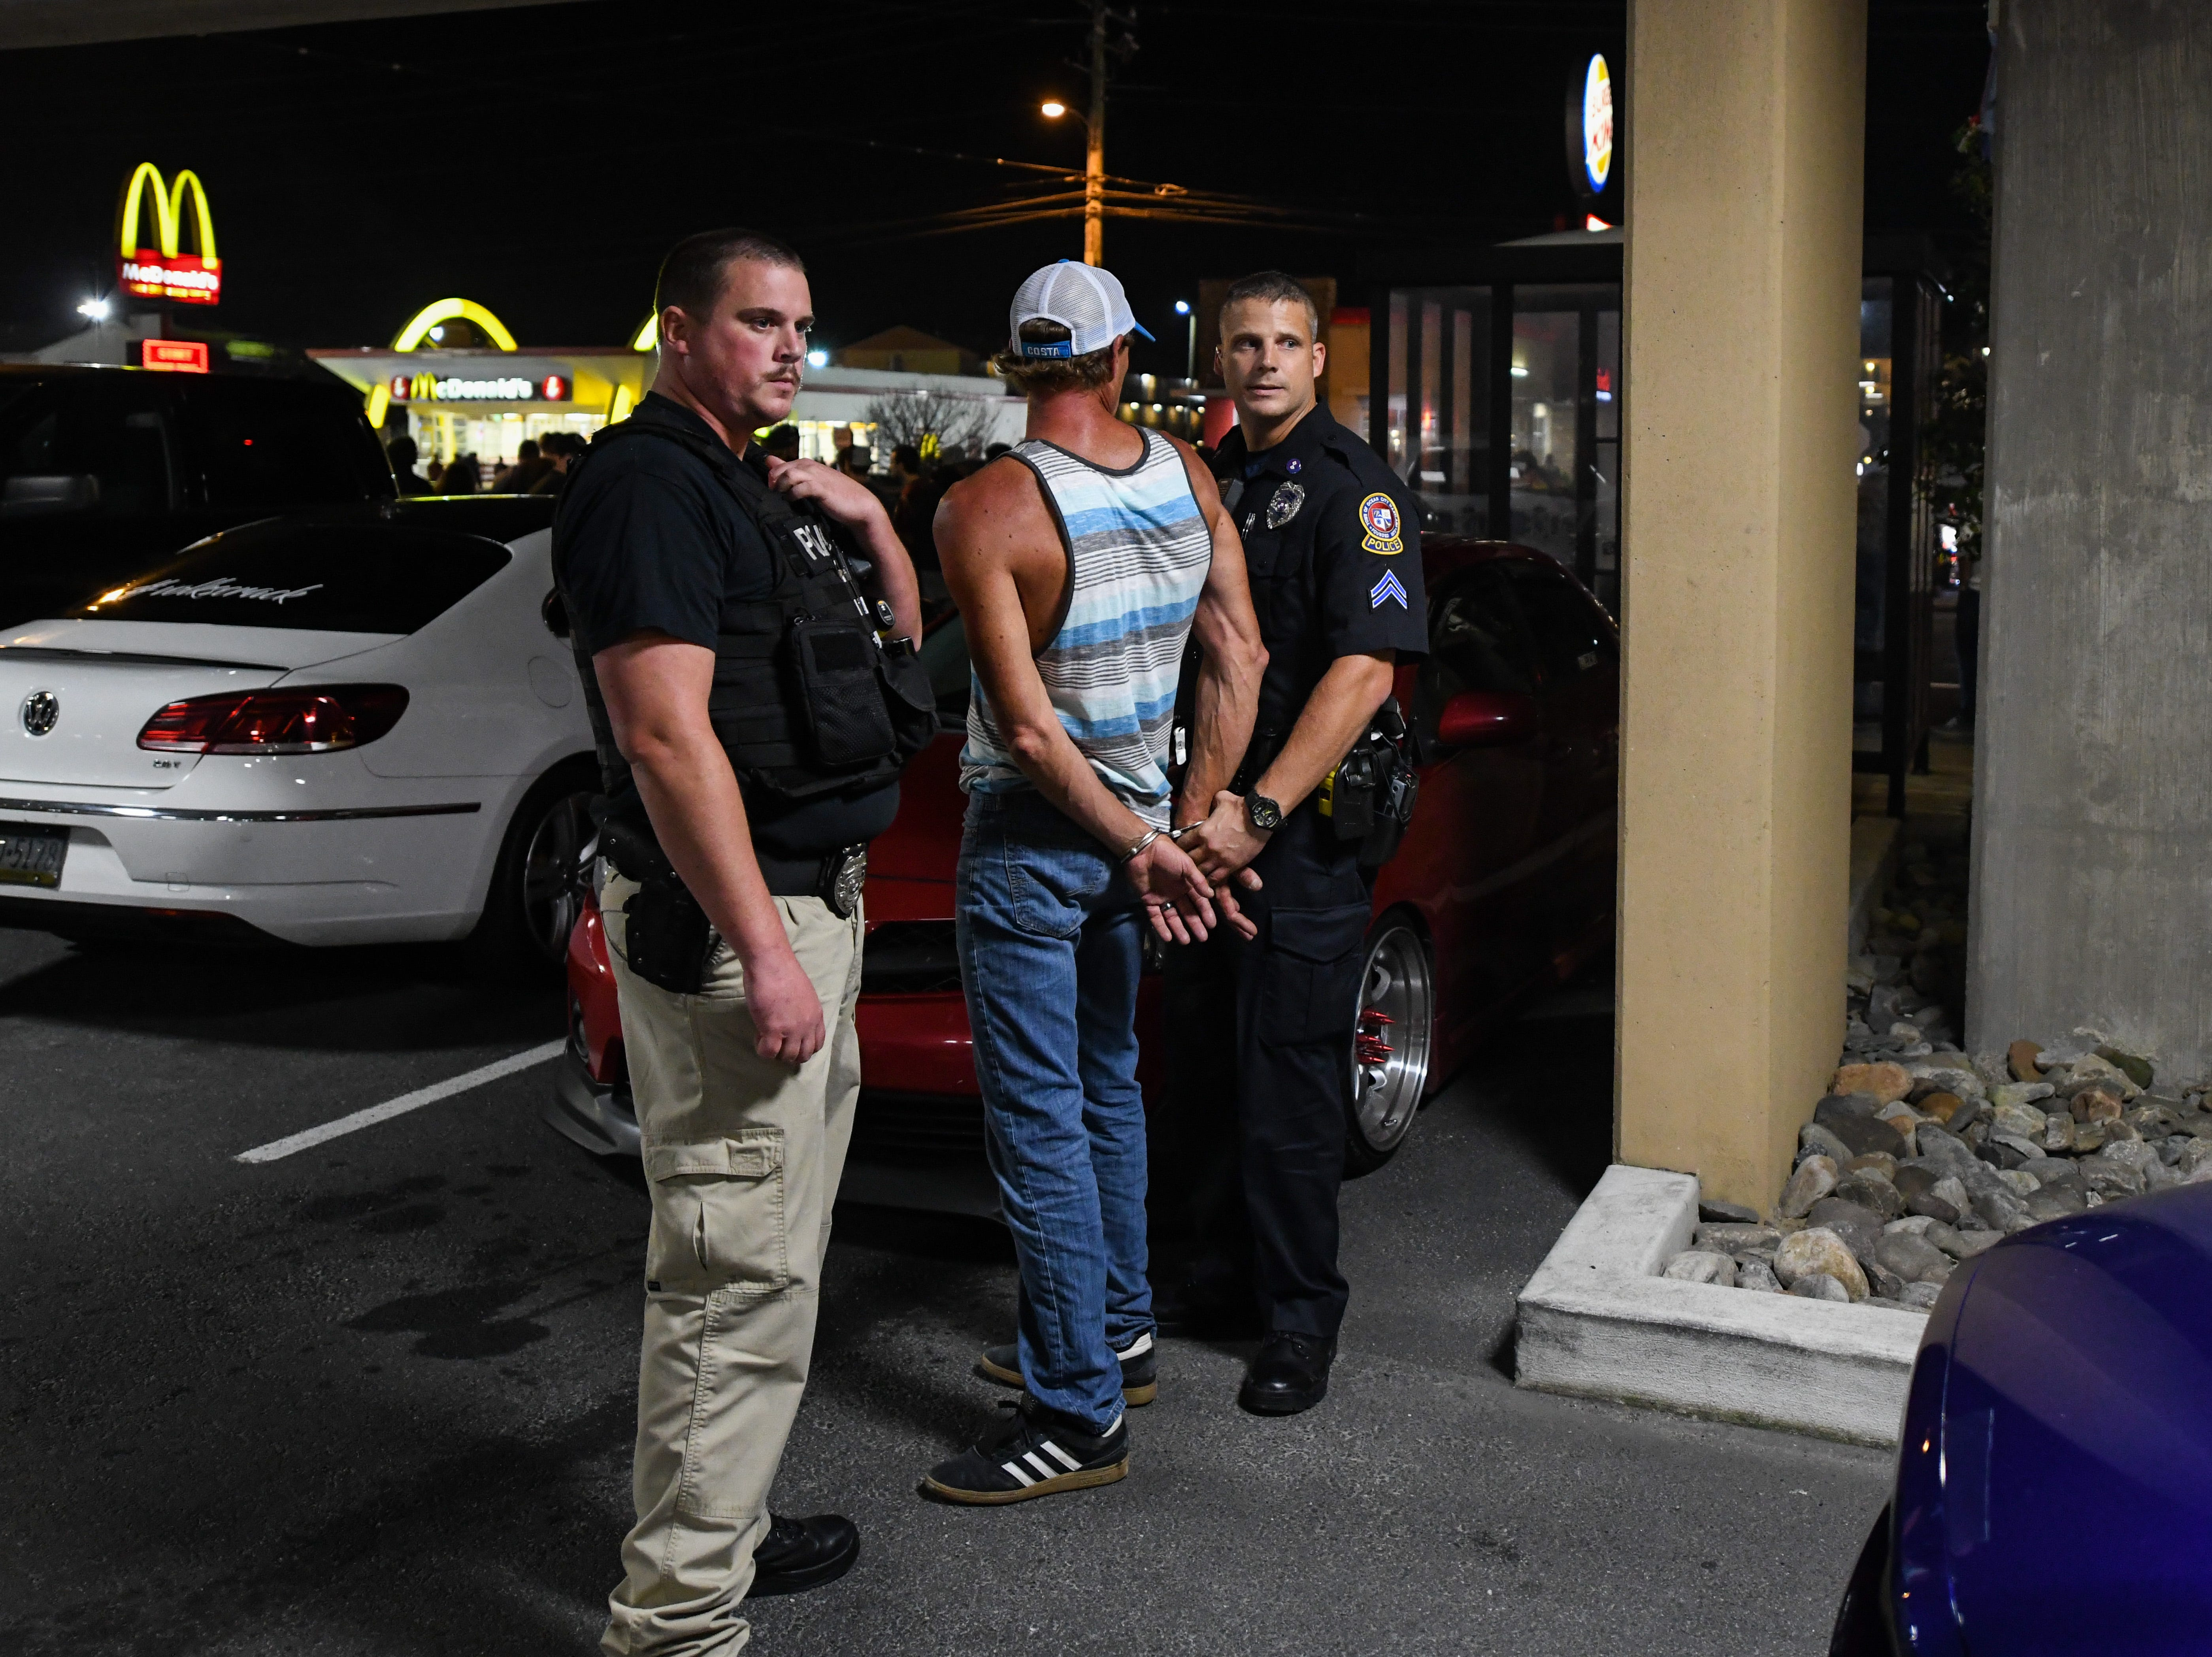 Corporal Jeff Johns arrests a man for disorderly conduct on Friday, Sept 28, 2018. Popular car show H2Oi  was traditionally held nearby and though it has now moved to Atlantic City attendees continue to flock to Ocean City.